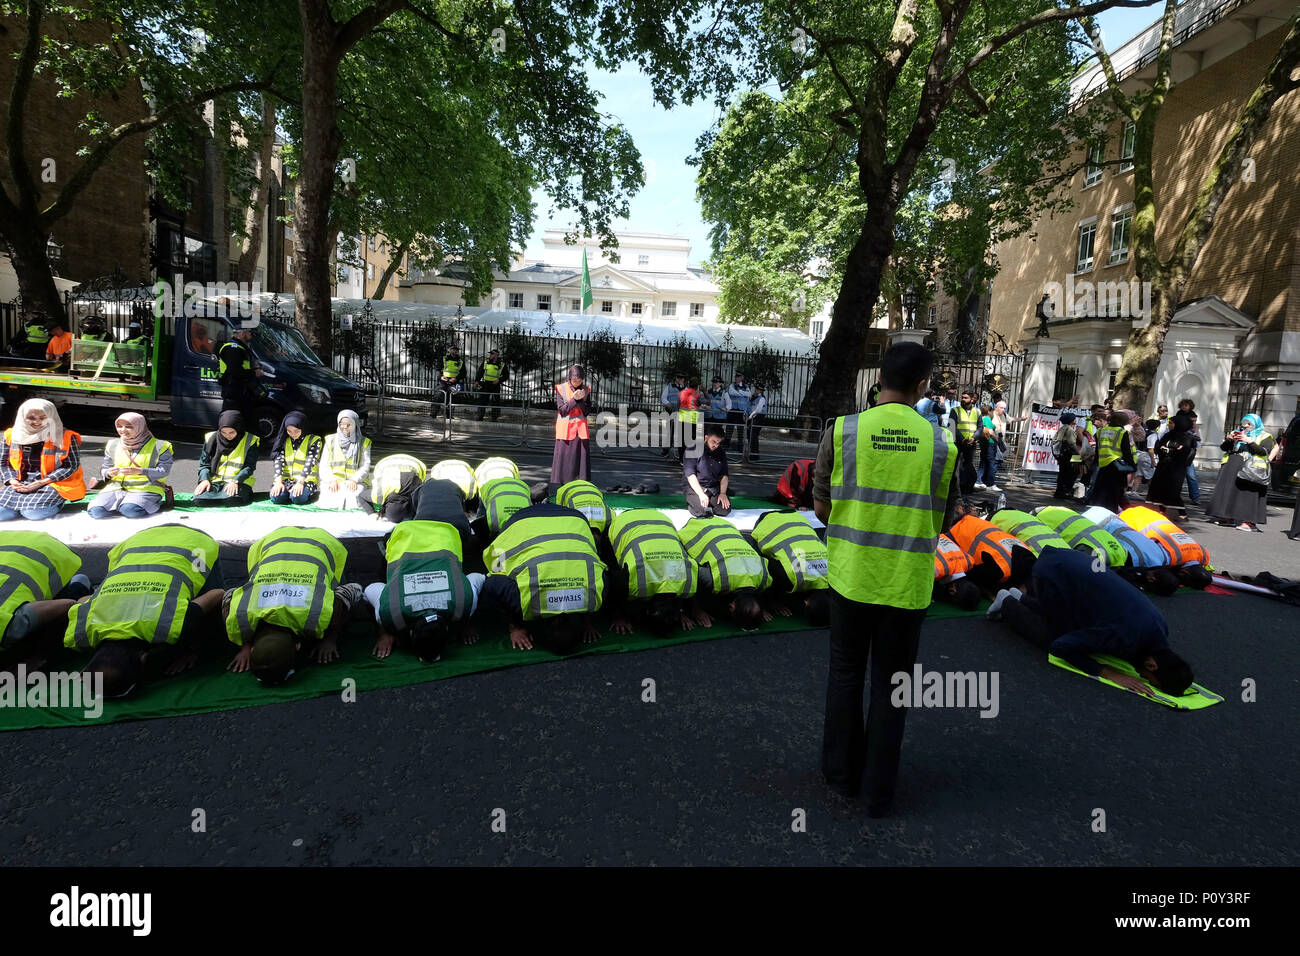 London, UK. 10th June 2018. Prayers on the Palestinian flag Al Quds day protest organised by IHRC in London goes ahead despite demands that Hezbollah flags should not be flown. Counter protests from Israeli supporters and Free Tommy Robinson supporters led to a large police presence Credit: Londonphotos/Alamy Live News - Stock Image